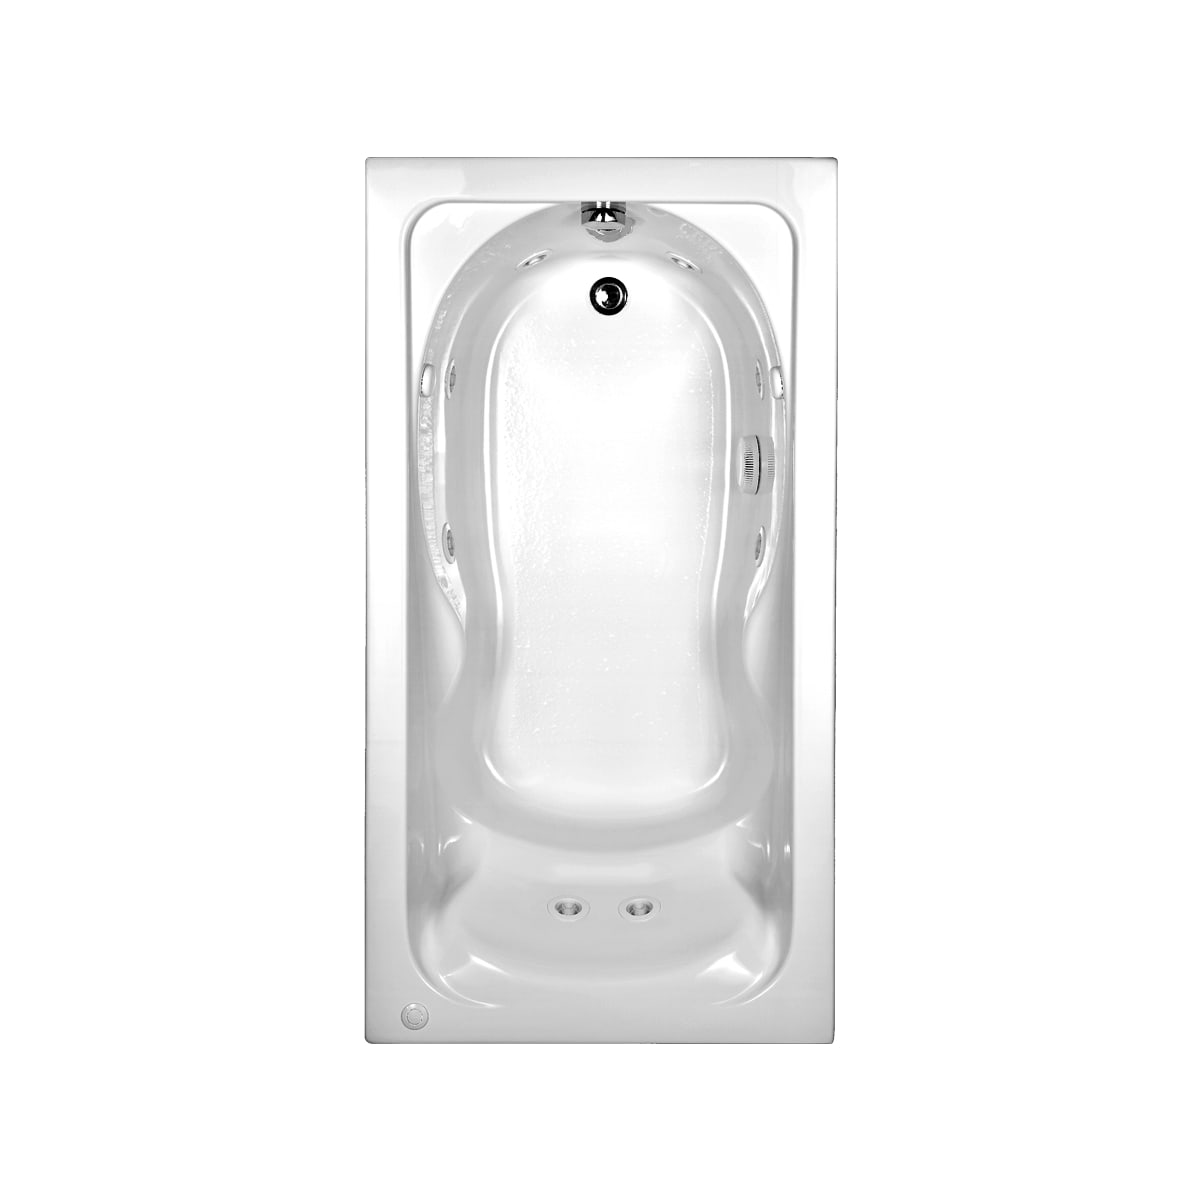 American Standard 2770018w020 White Cadet 59 7 8 Acrylic Parts Diagram Jacuzzi Whirlpool Tub Air Button Previous